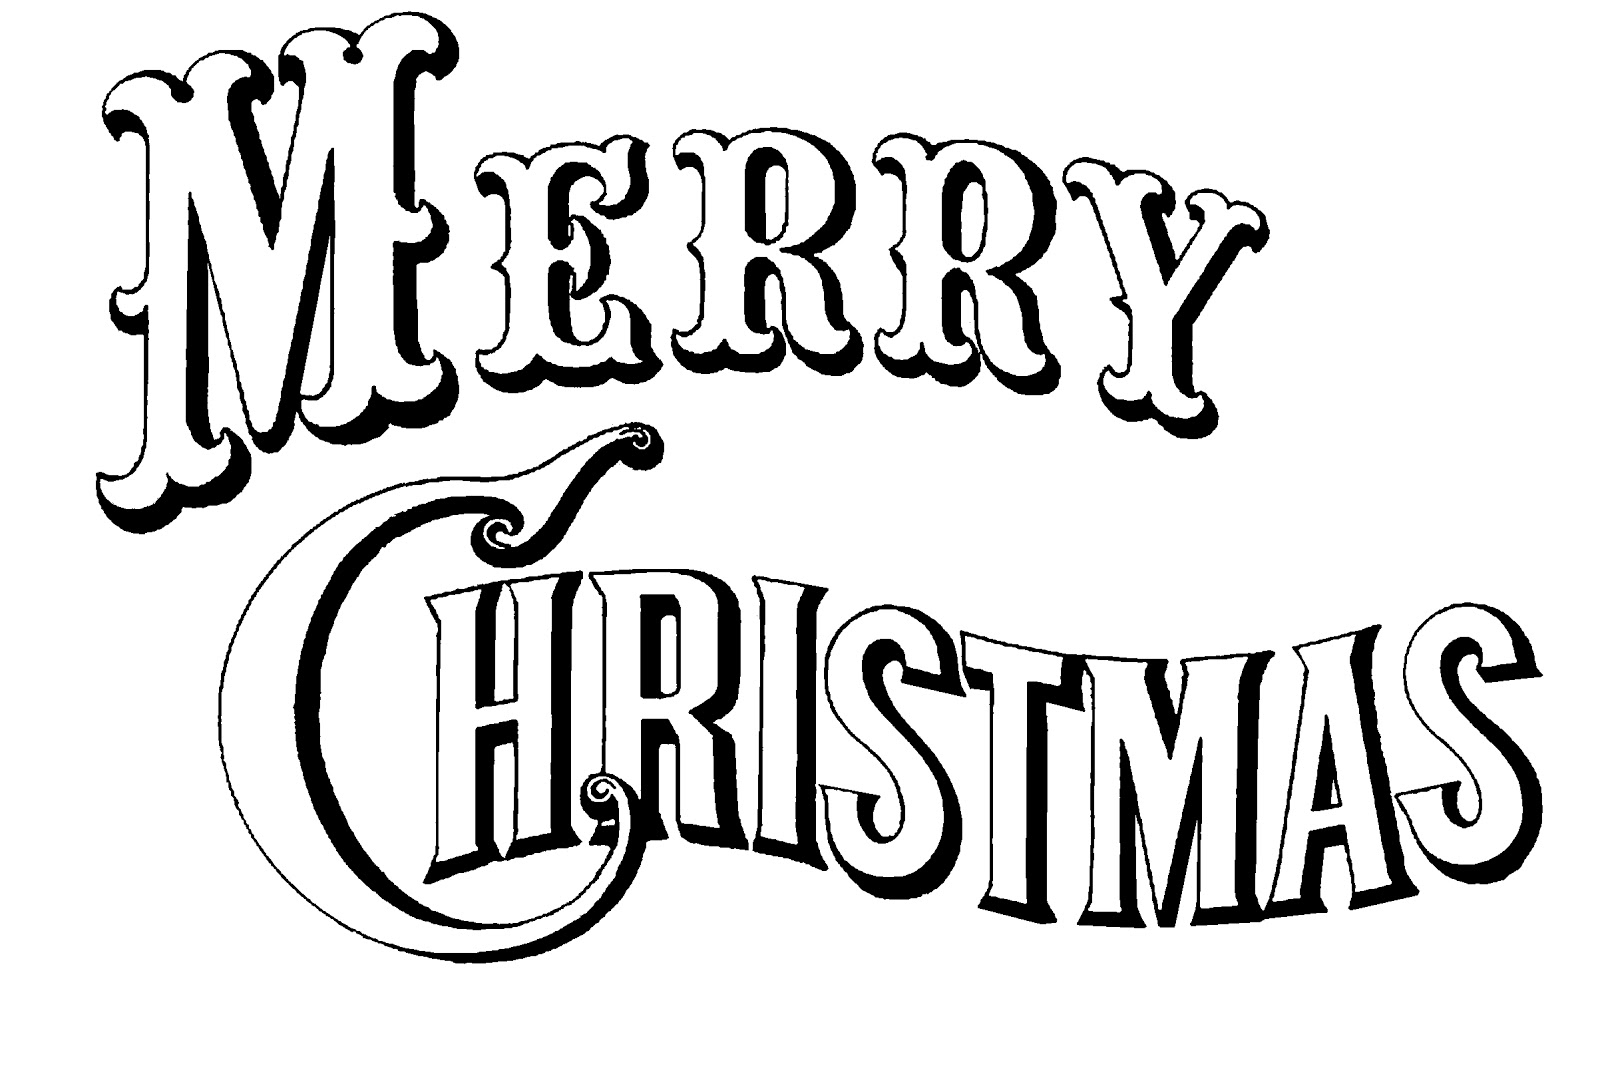 Merry Christmas Clip Art In Dxf Format